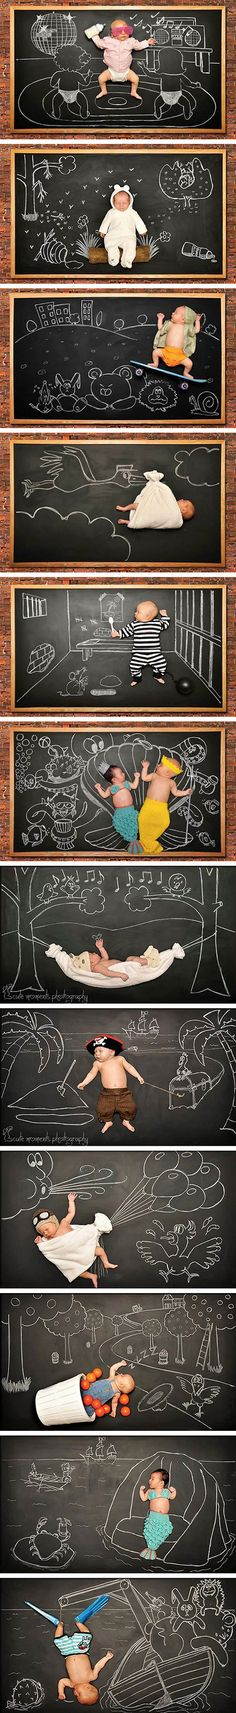 Photographer and mother, Anna Eftimie, collaborated with her husband to put together these amazing blackboard adventures to help celebrate the birth of her son.